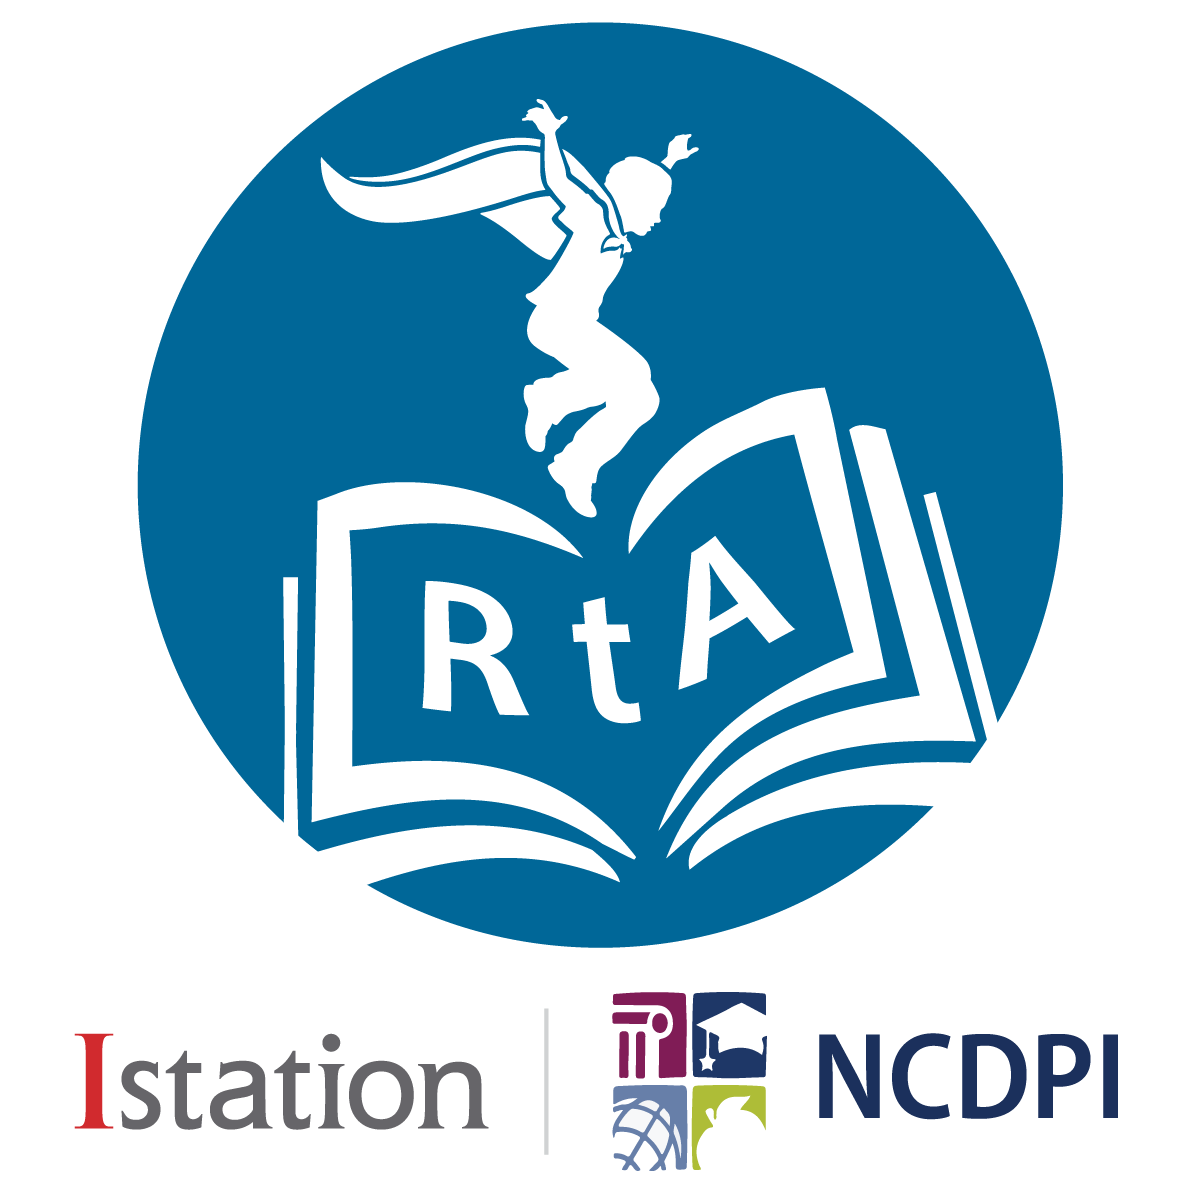 North Carolina and Istation logo